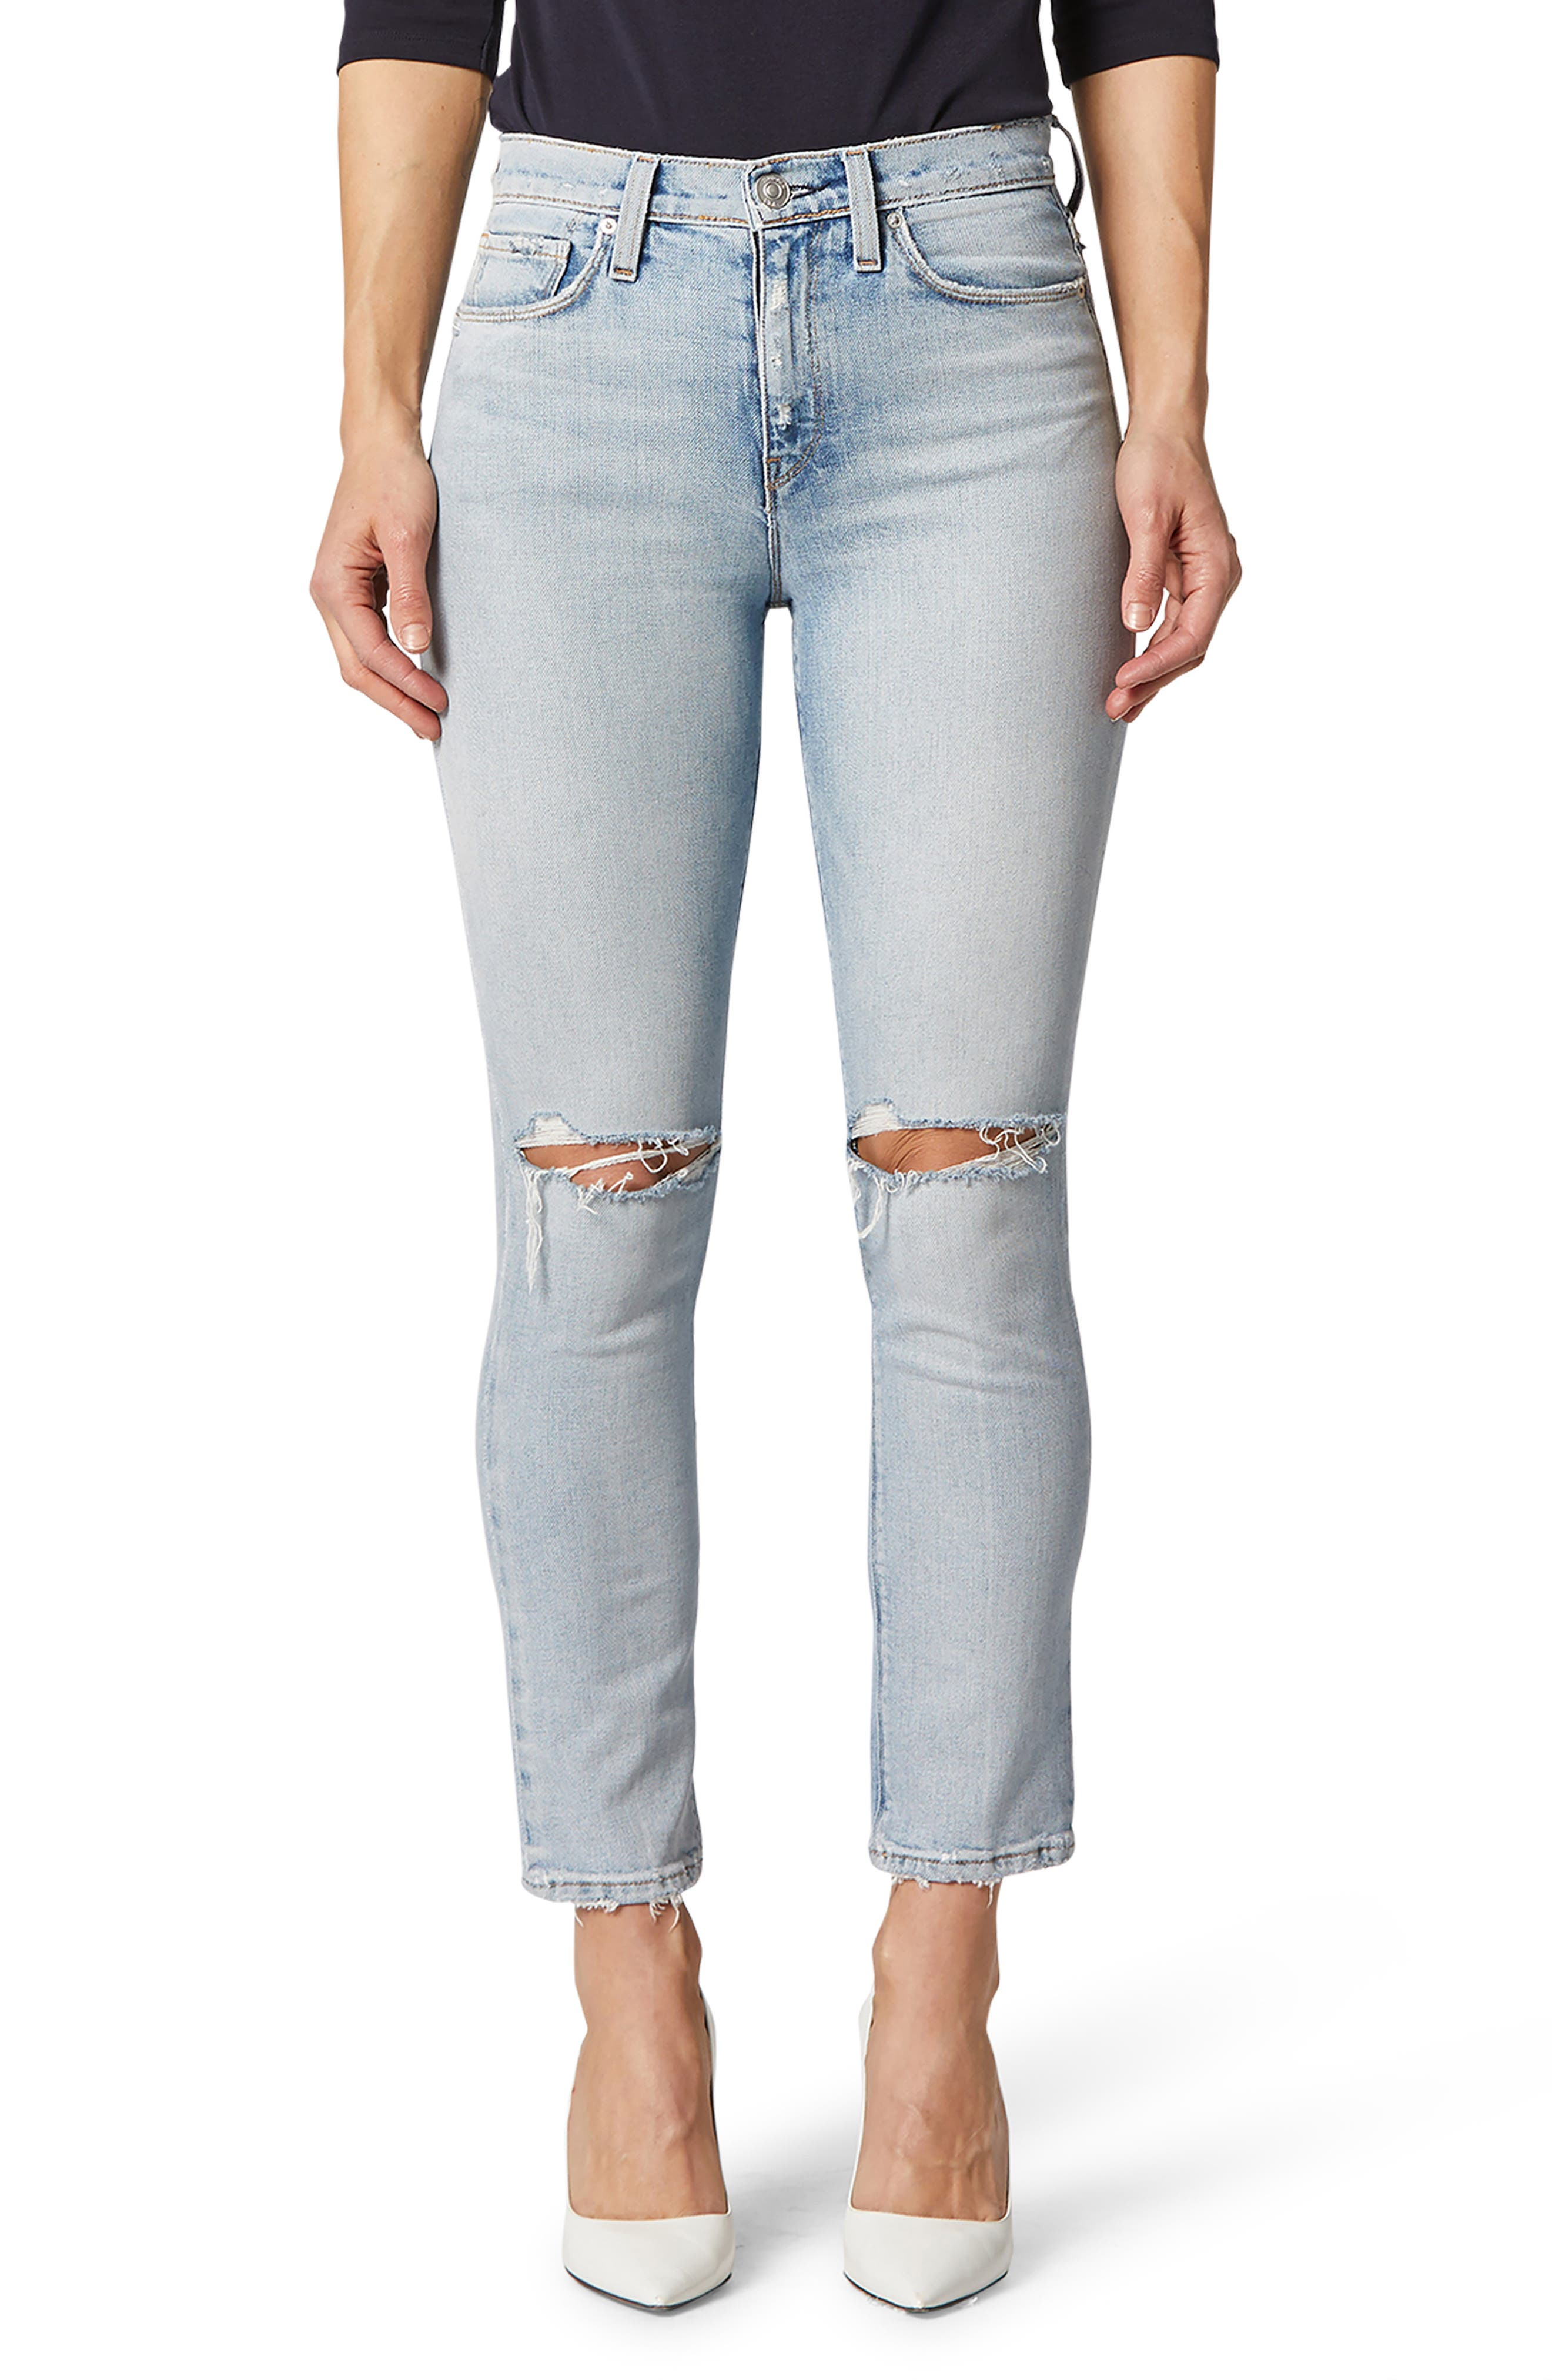 Keep your casual look on point with these stretch-denim skinny jeans in an ankle-grazing cut. Style Name: Hudson Jeans Holly High Waist Ankle Skinny Jeans. Style Number: 5956117 1. Available in stores.